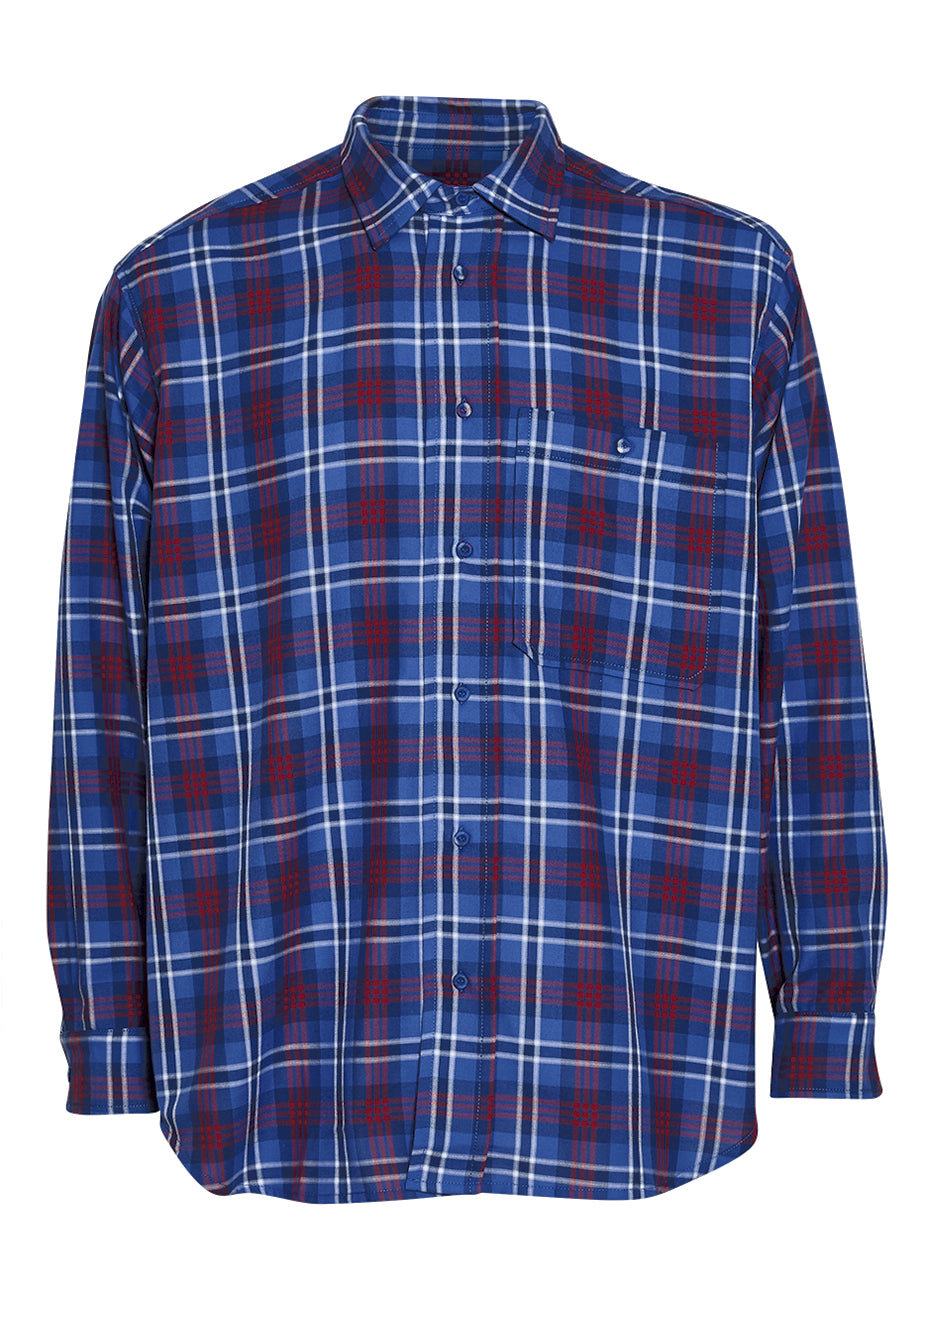 Ron Check Oversize Shirt